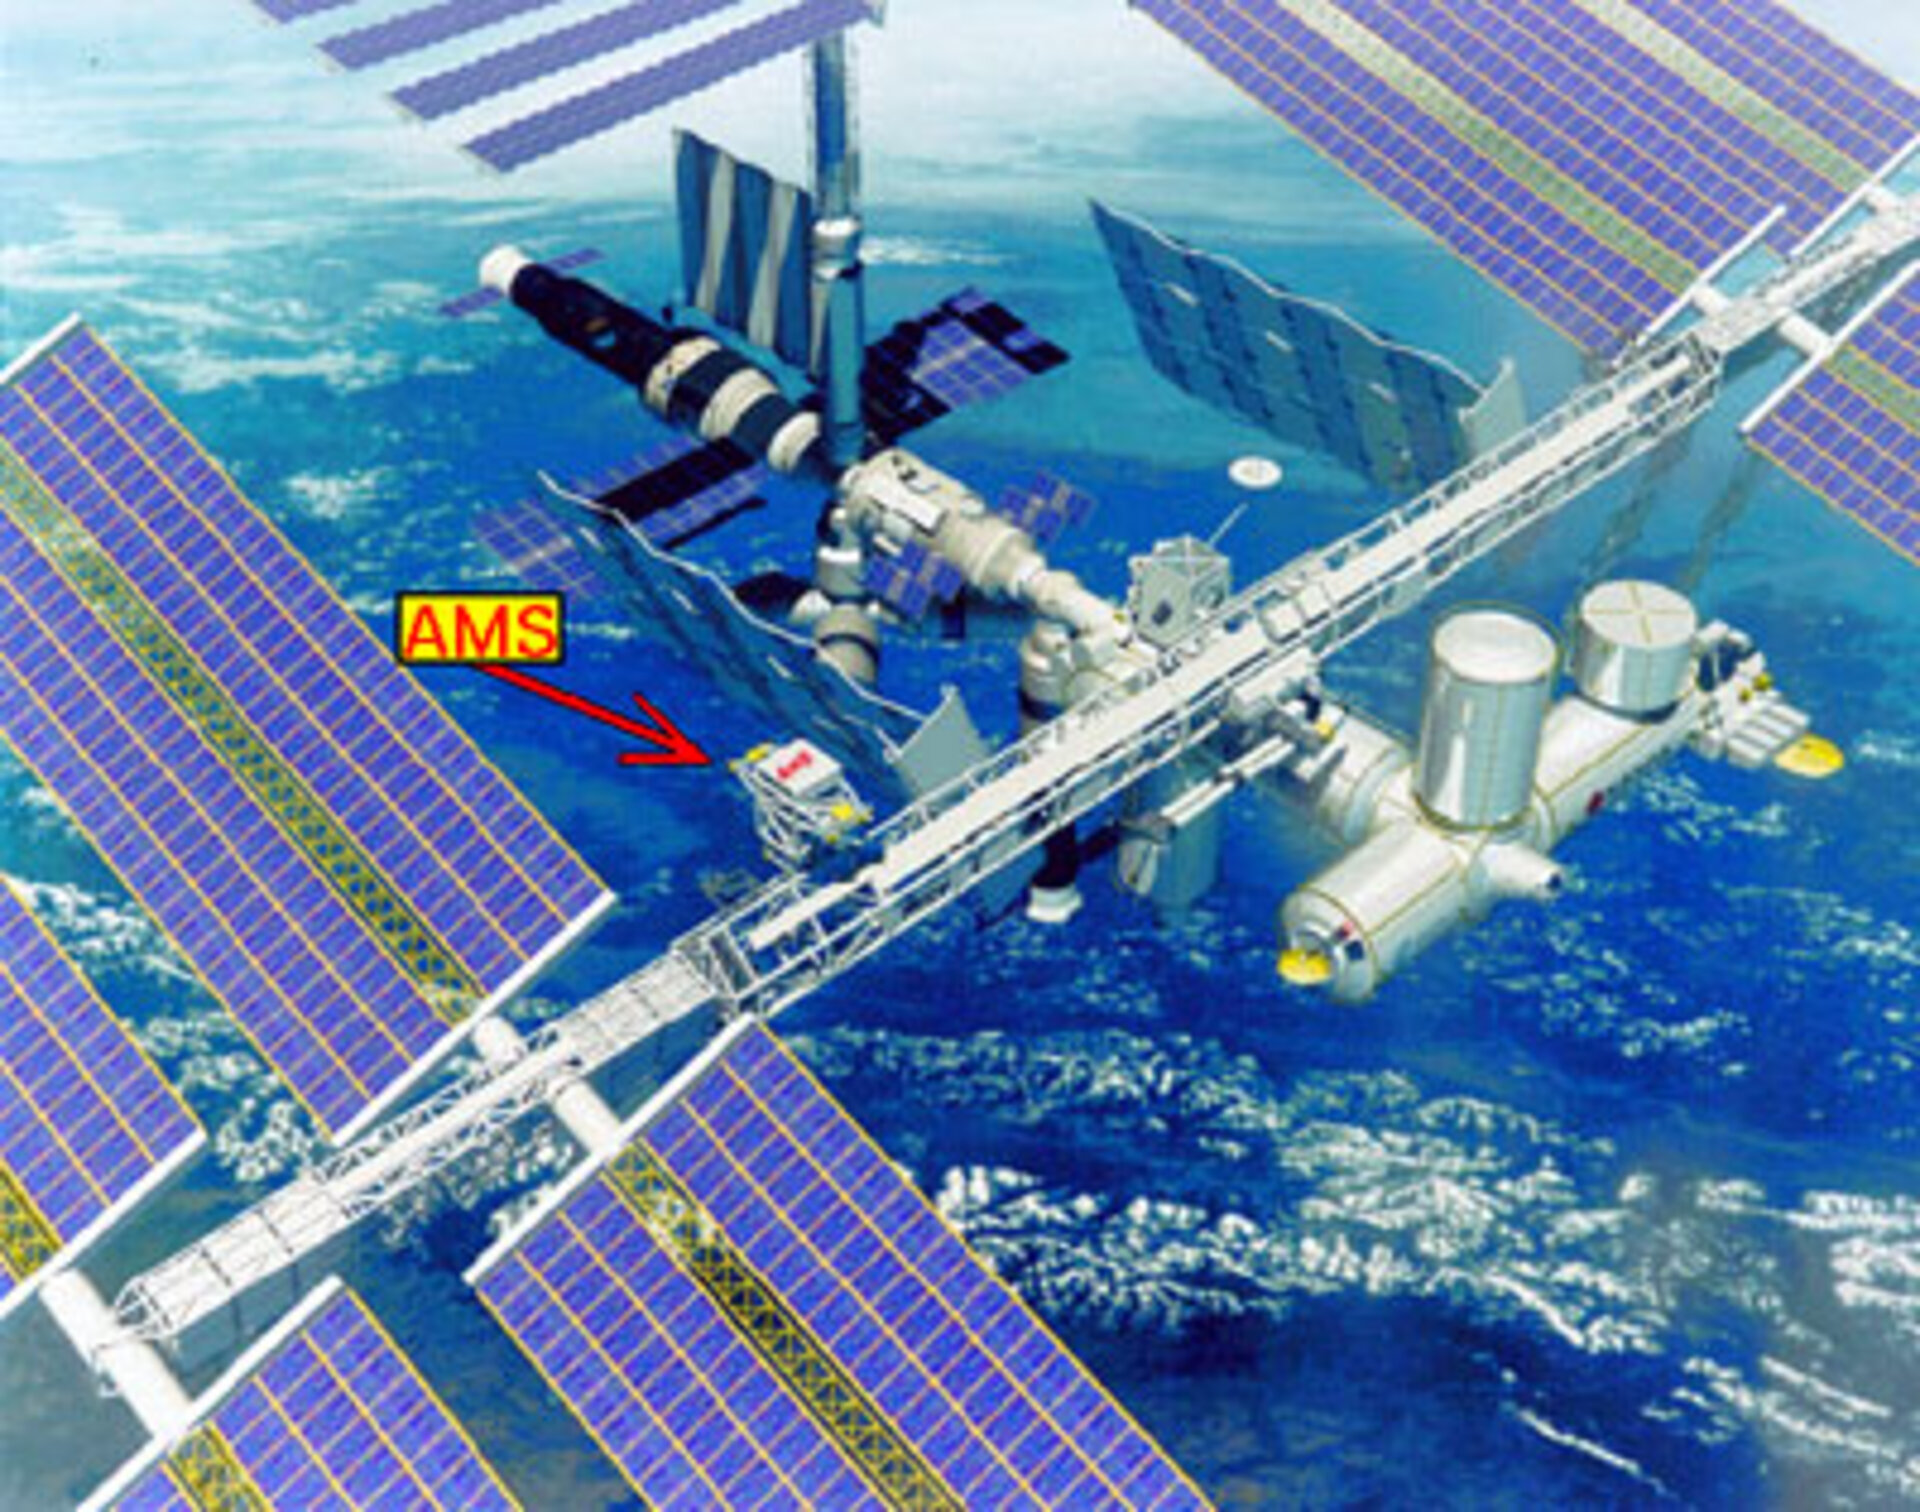 AMS will be installed on the ISS central truss